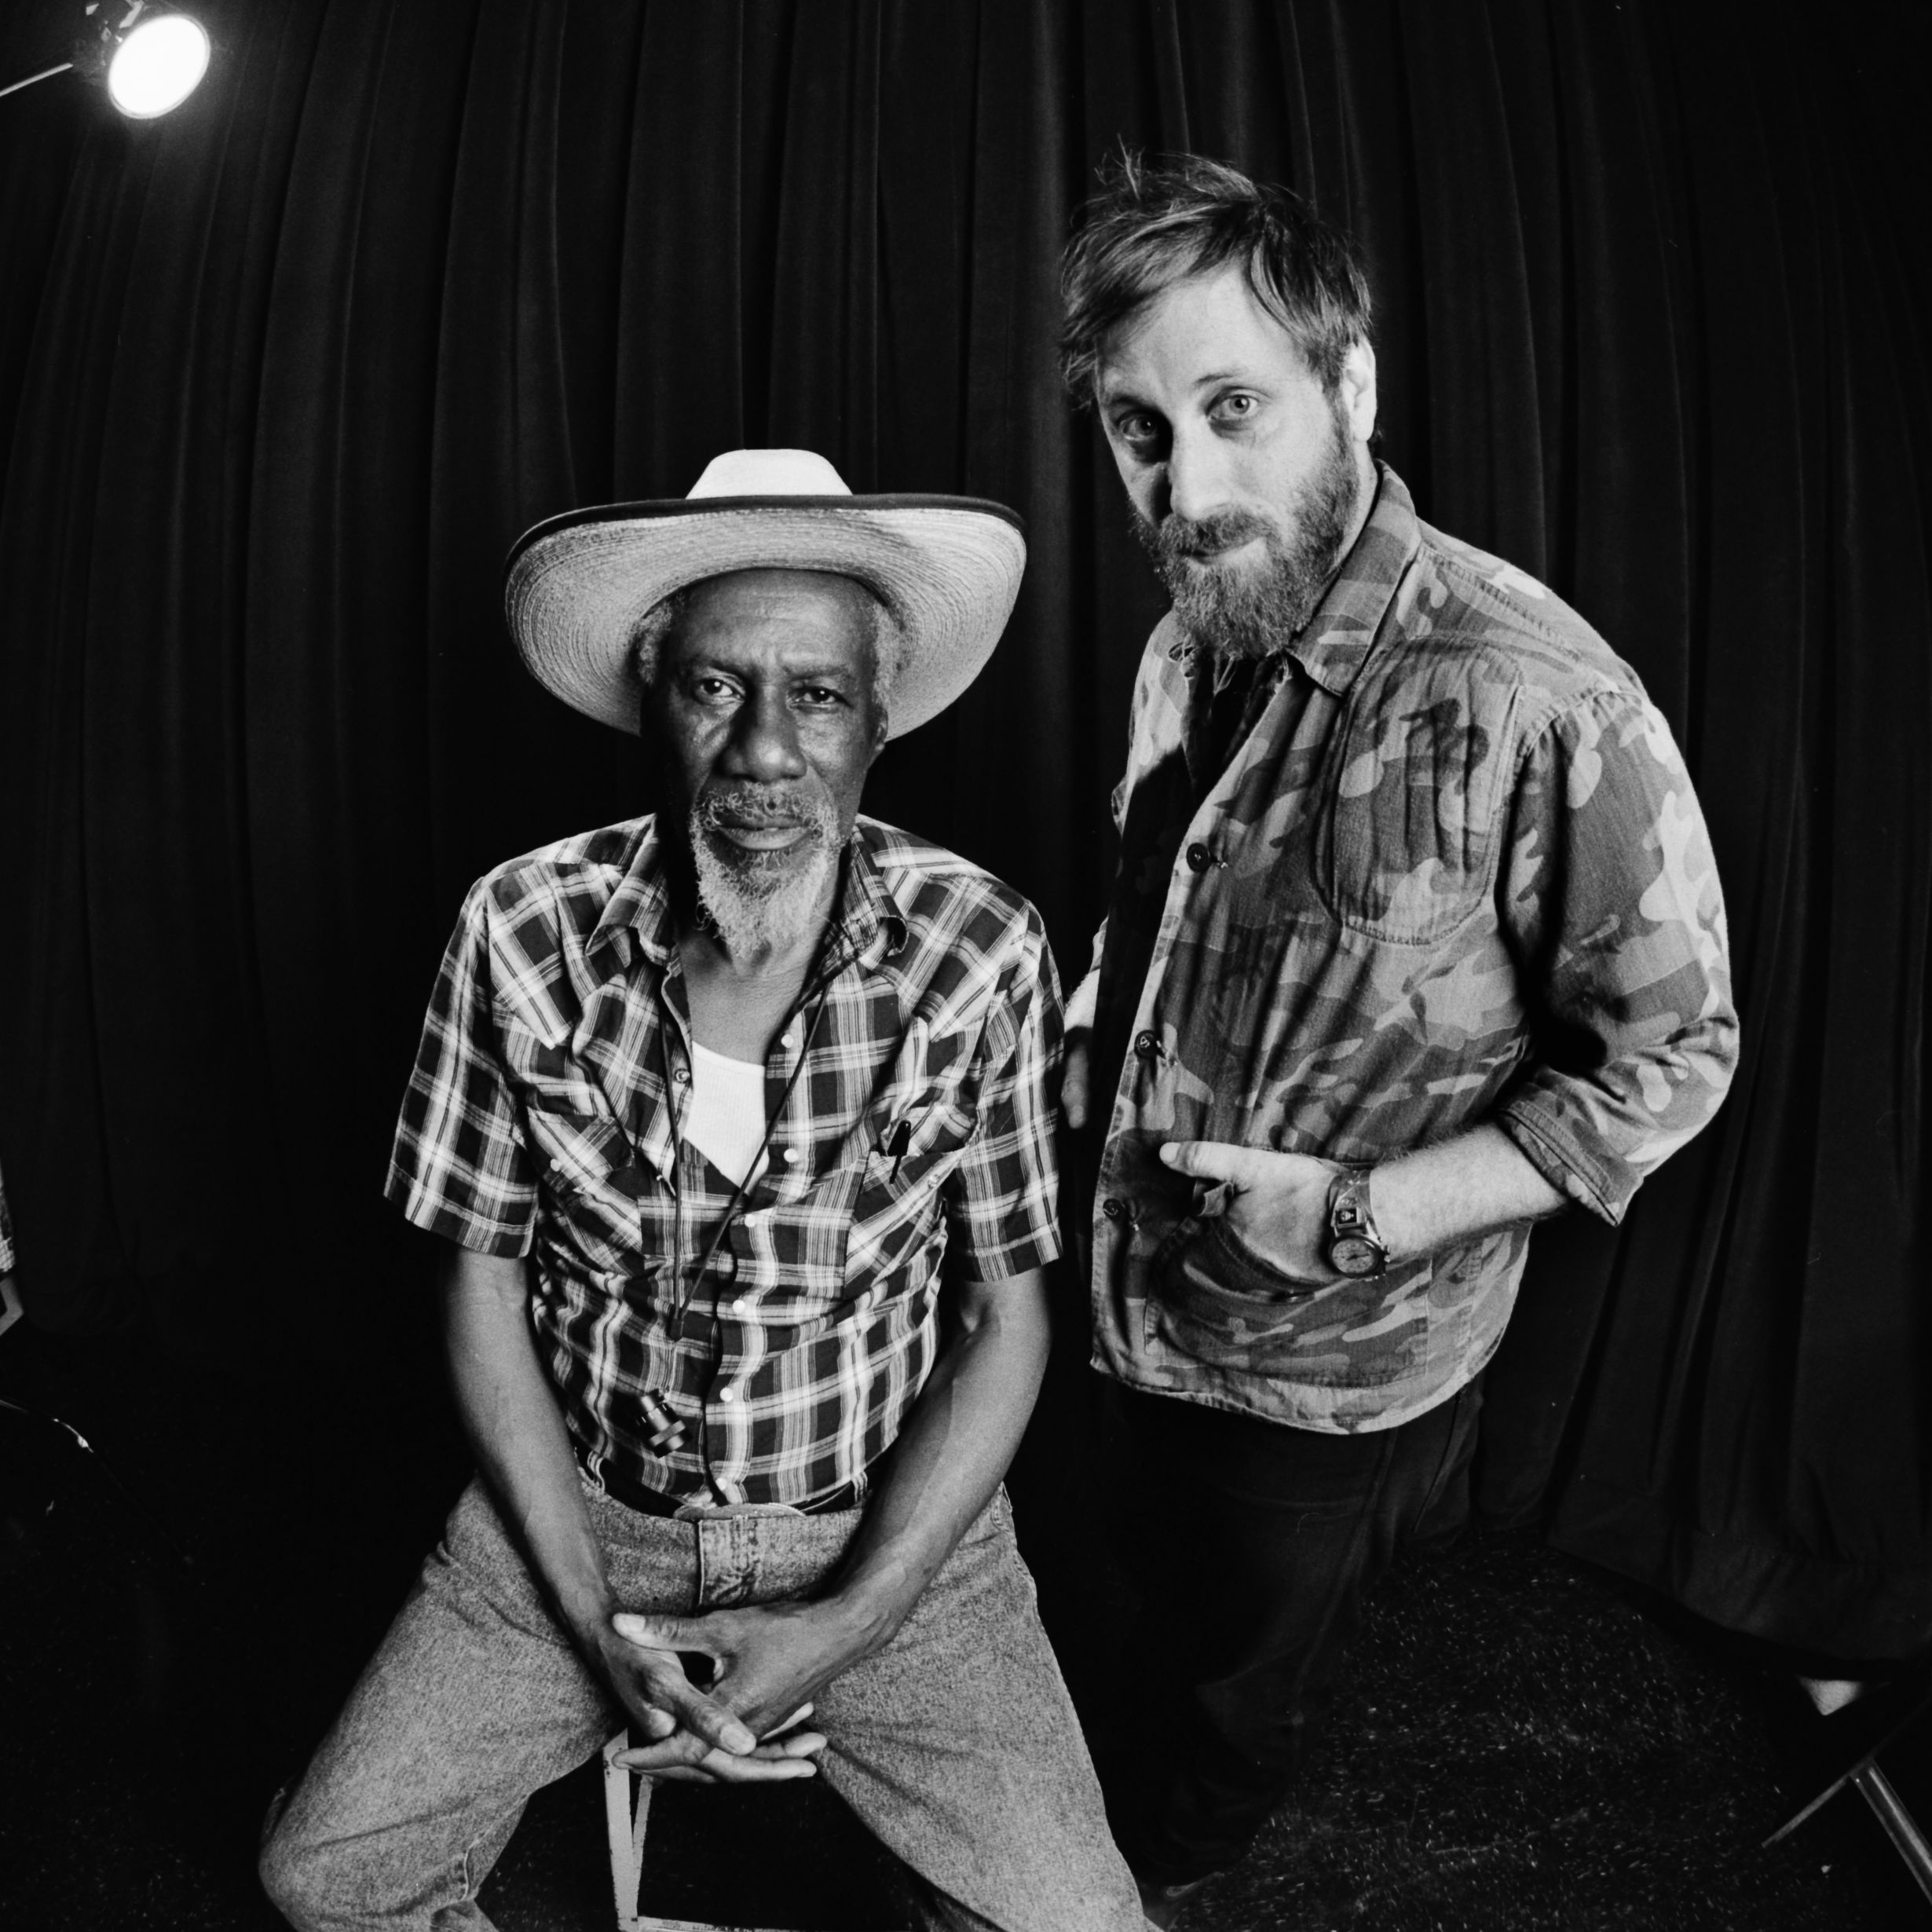 Caption: Robert Finley with Dan Auerbach